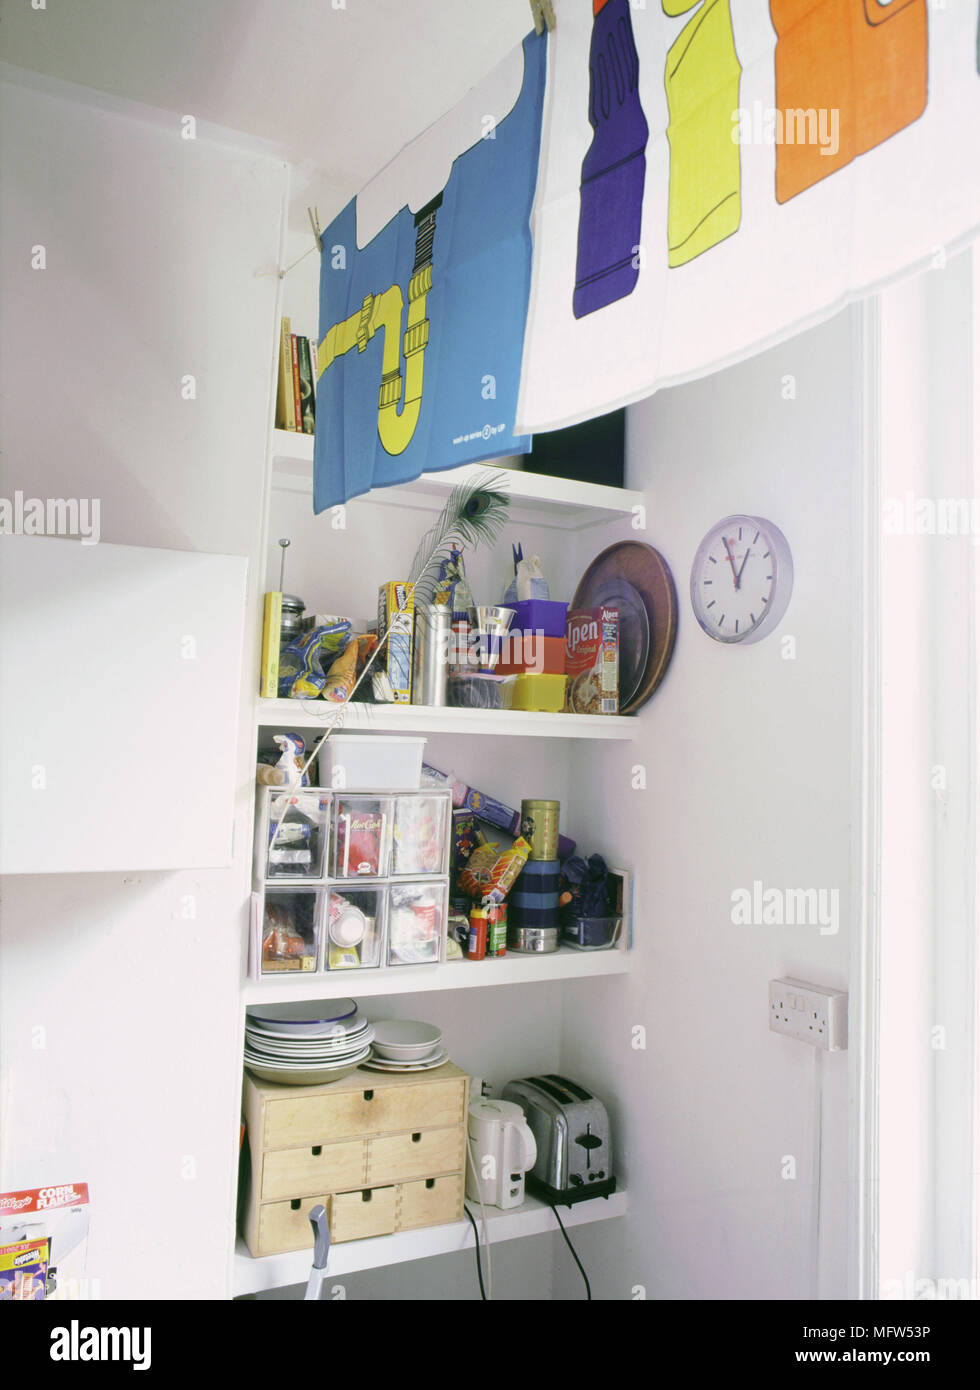 Niche Shelving Cluttered With Miscellaneous Kitchen Items.   Stock Image